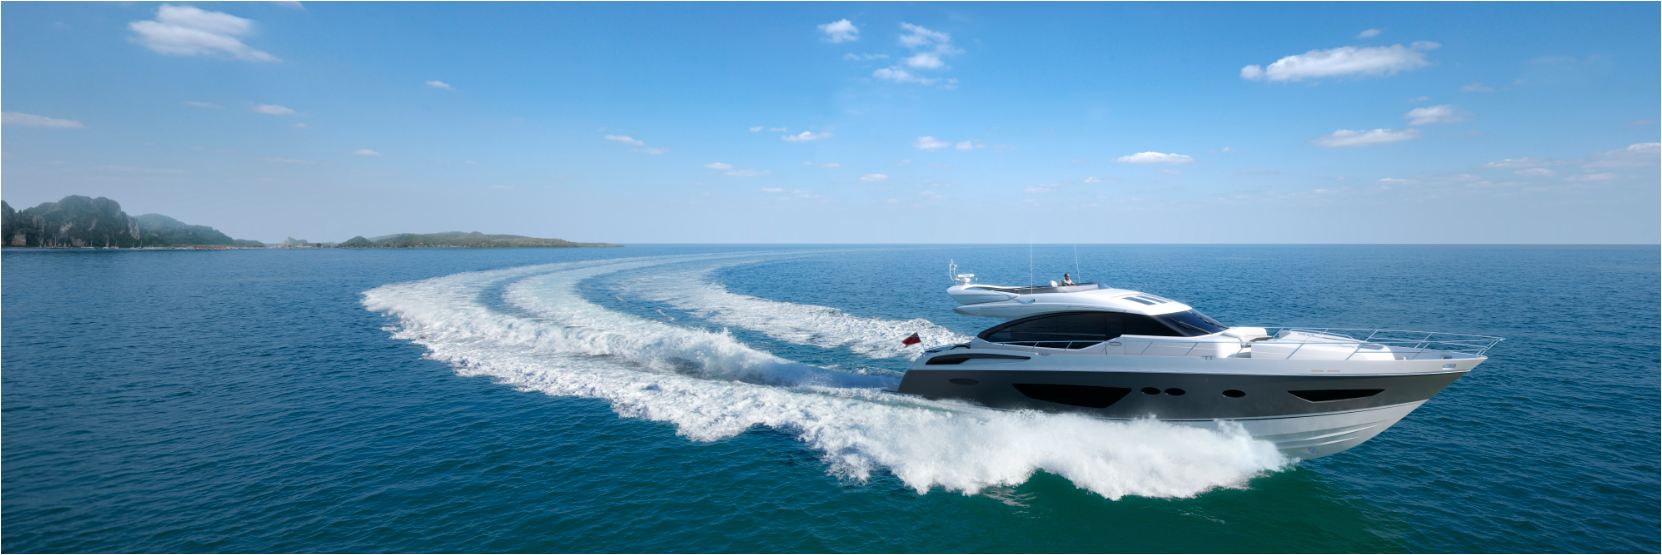 yacht page header